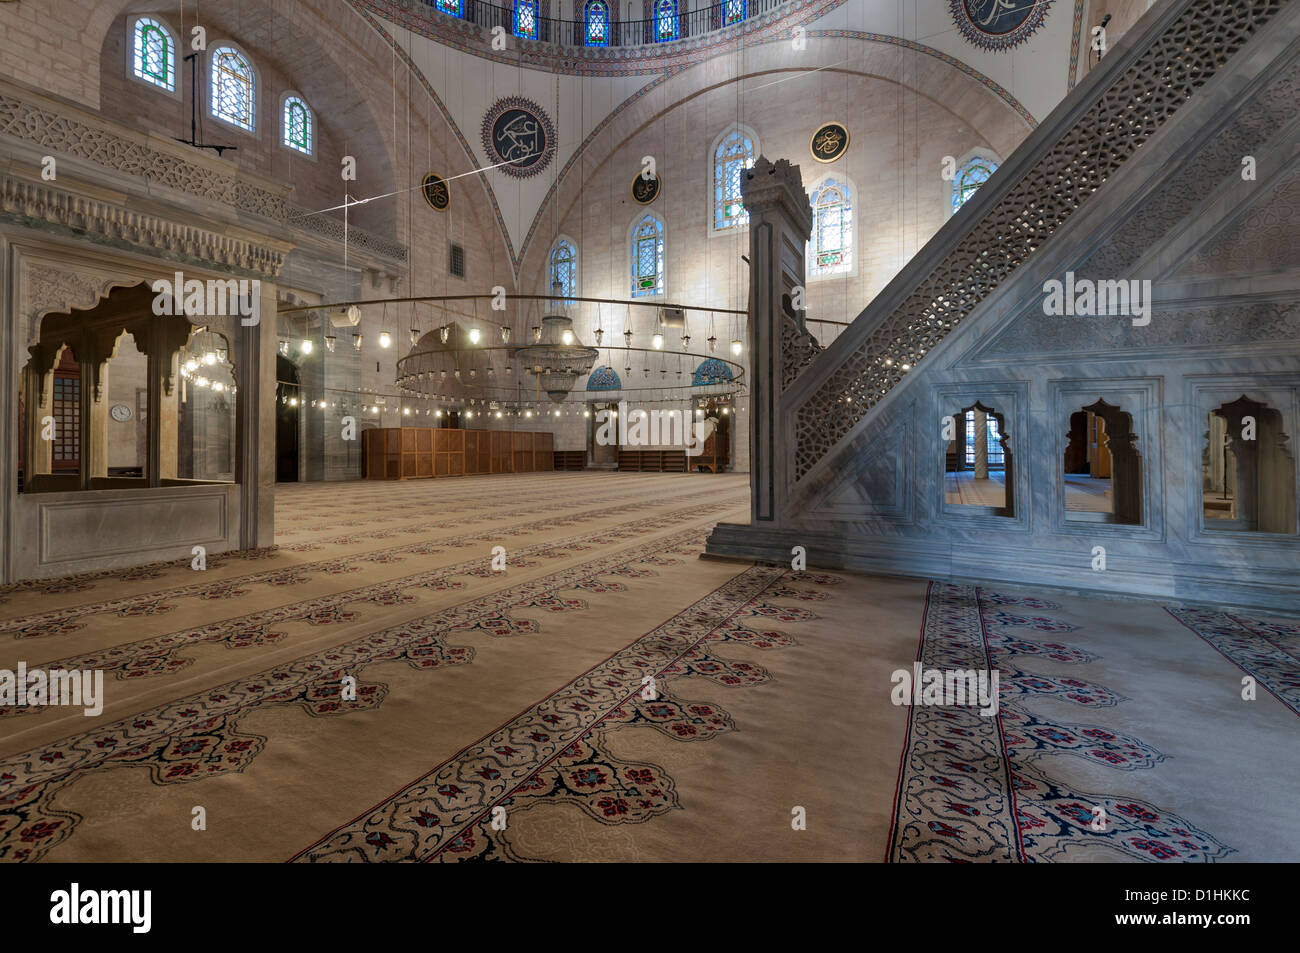 Interior of the yavuz selim mosque in istanbulturkey stock photo interior of the yavuz selim mosque in istanbulturkey thecheapjerseys